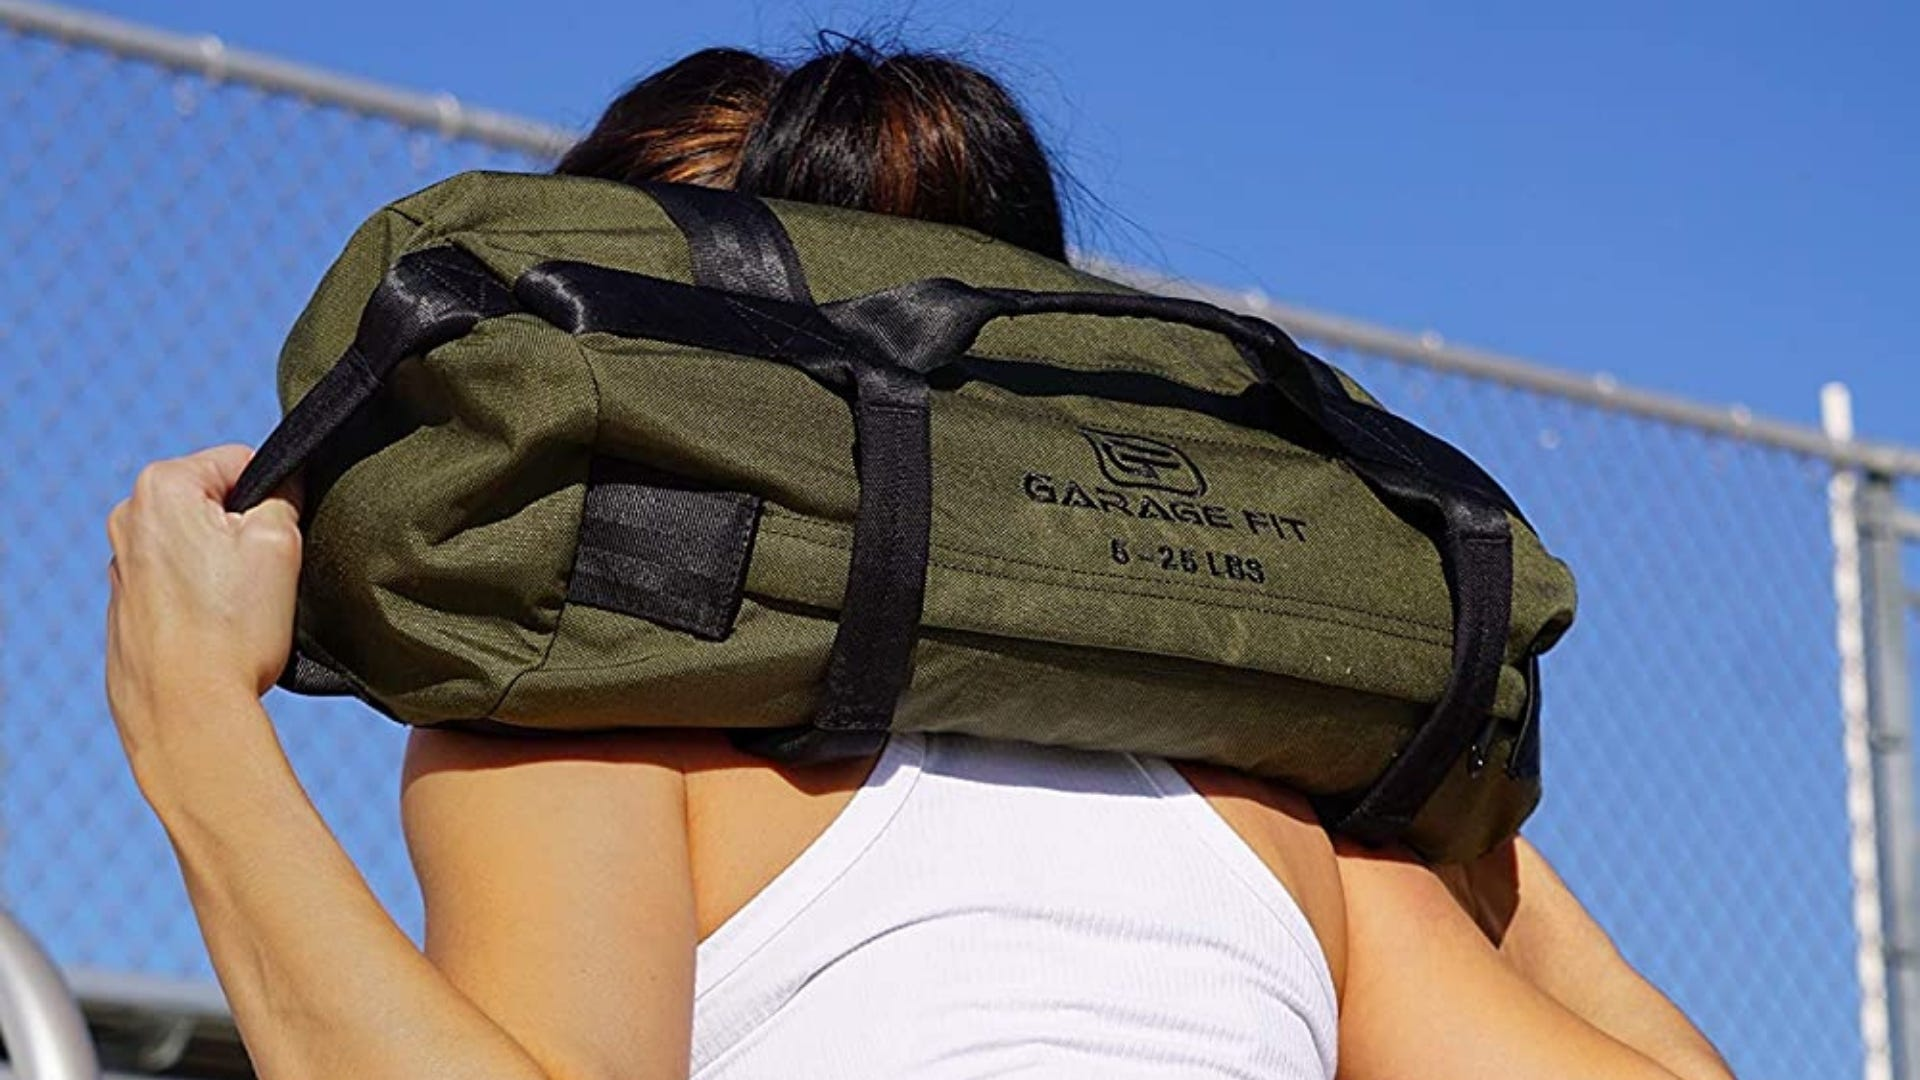 Woman is carrying green workout sandbag over her shoulders.